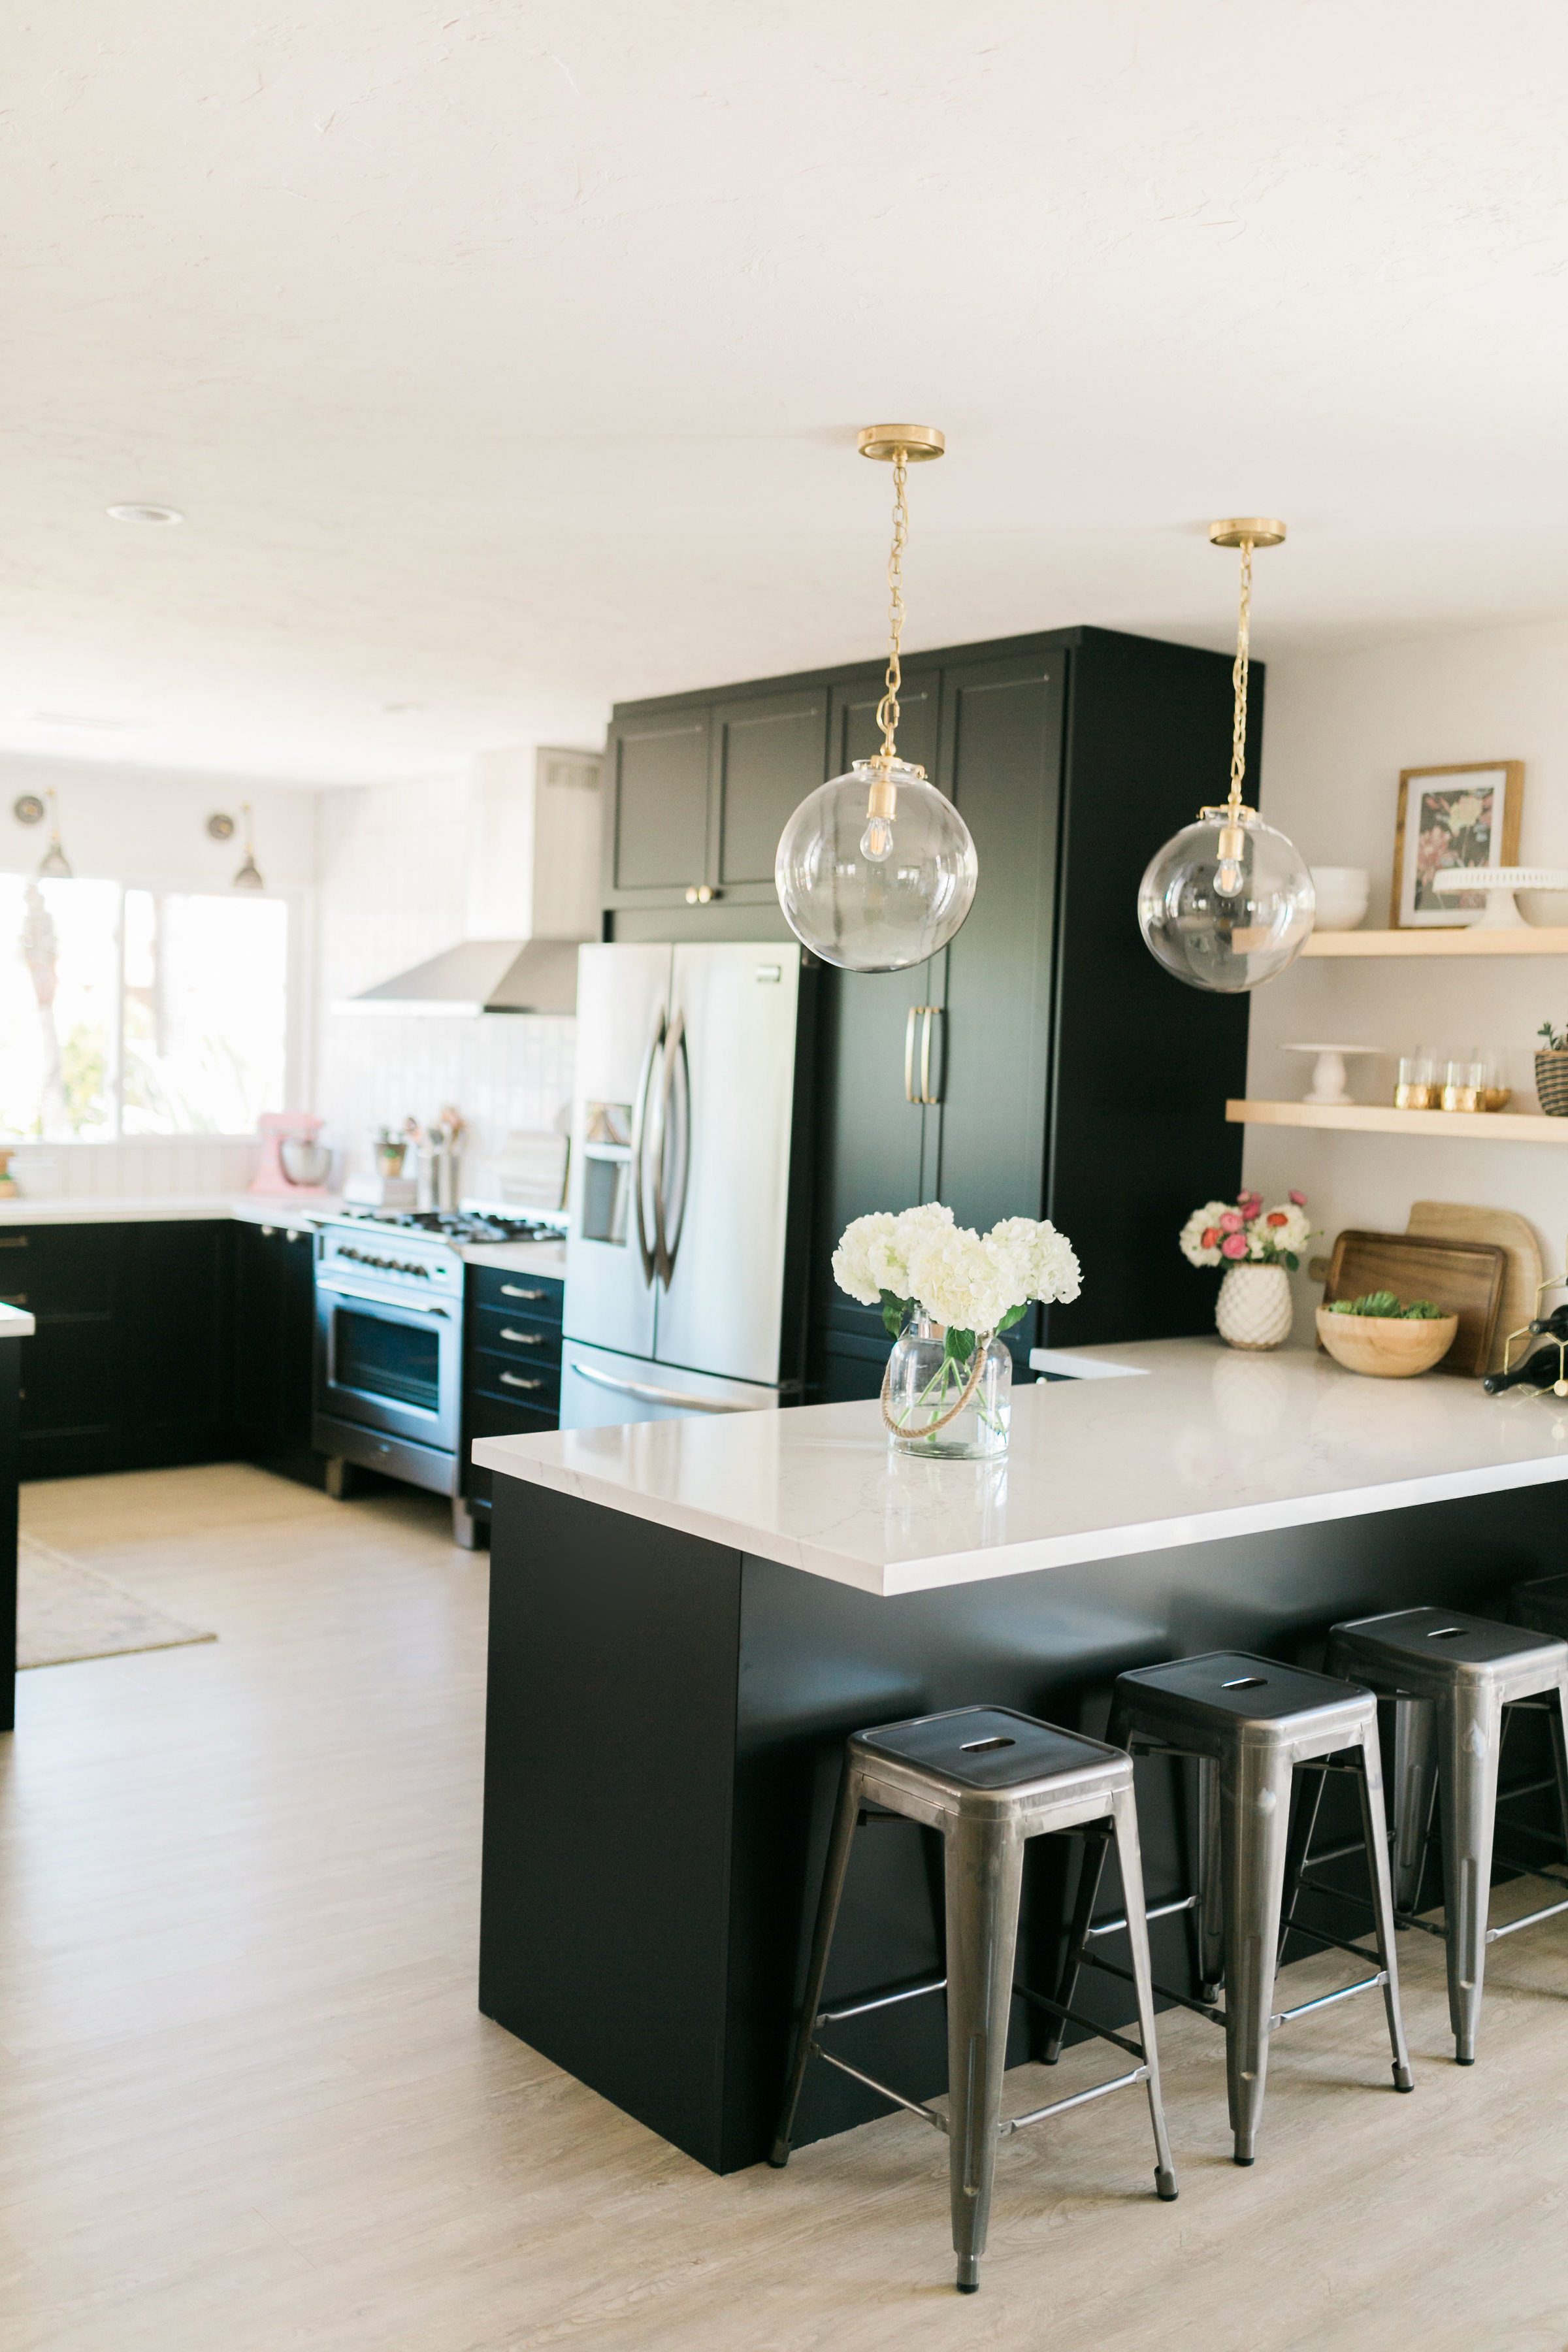 Cleaning Tips + Products for a Sparkling Clean Kitchen - 1111 Light Lane